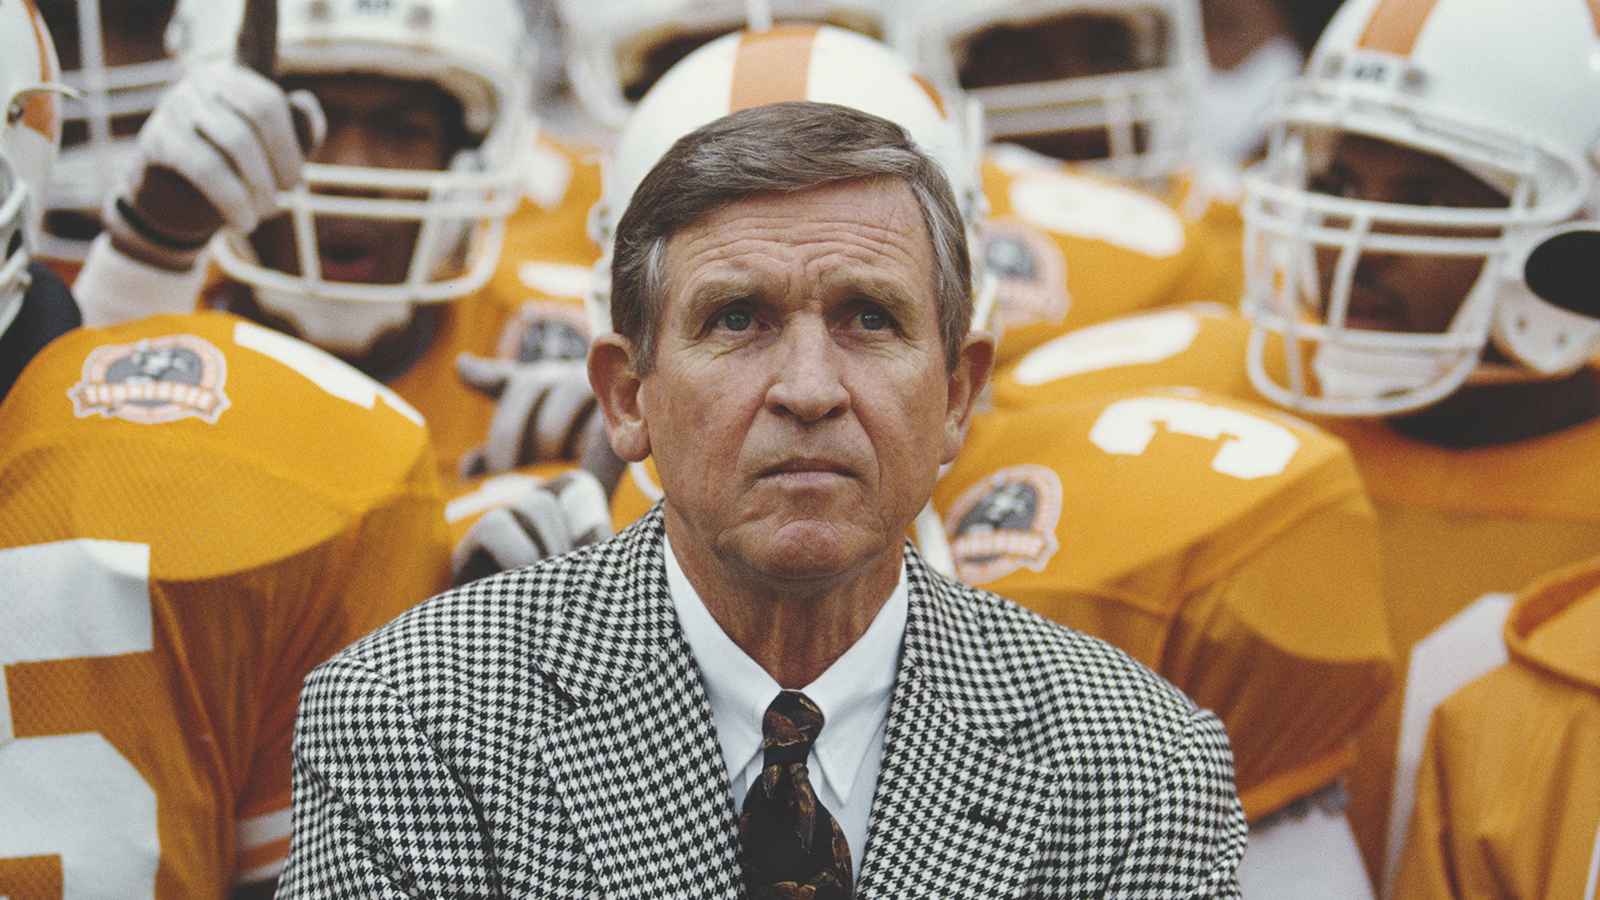 Johnny Majors, famed college football coach, dies at 85